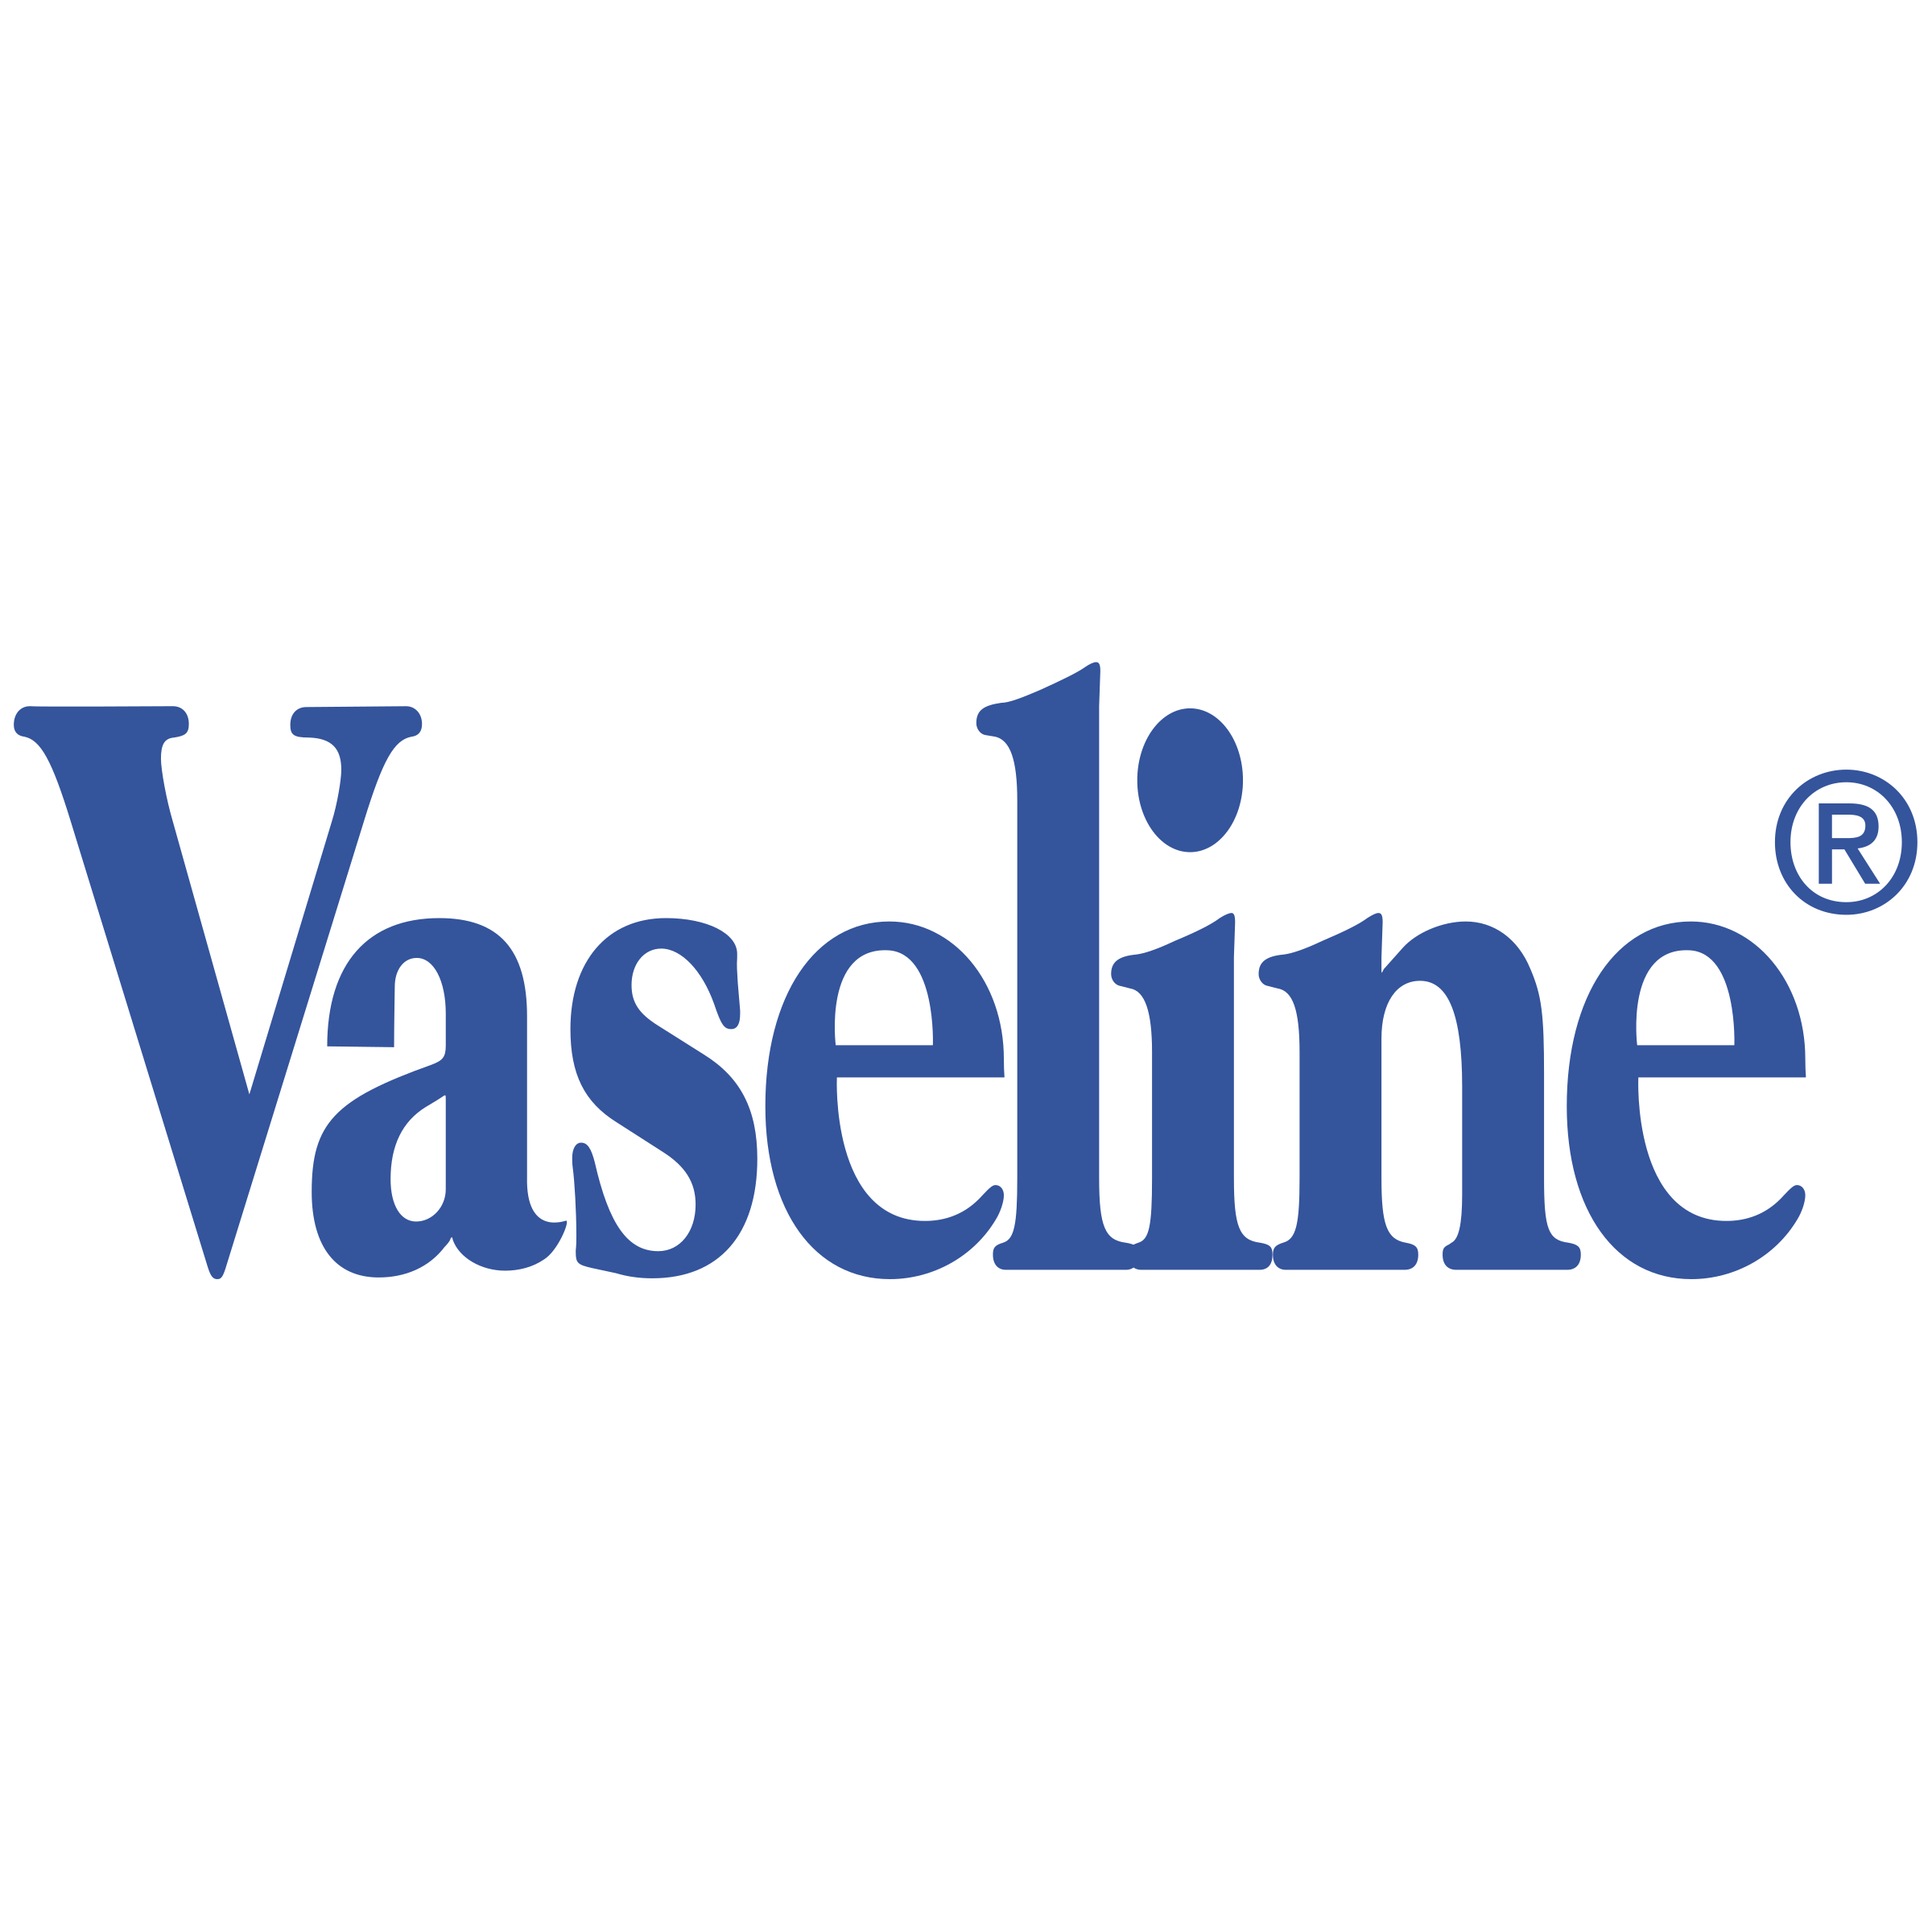 vaseline logo png transparent svg vector freebie supply rh freebiesupply com vaseline logo transparent vaseline logo vector